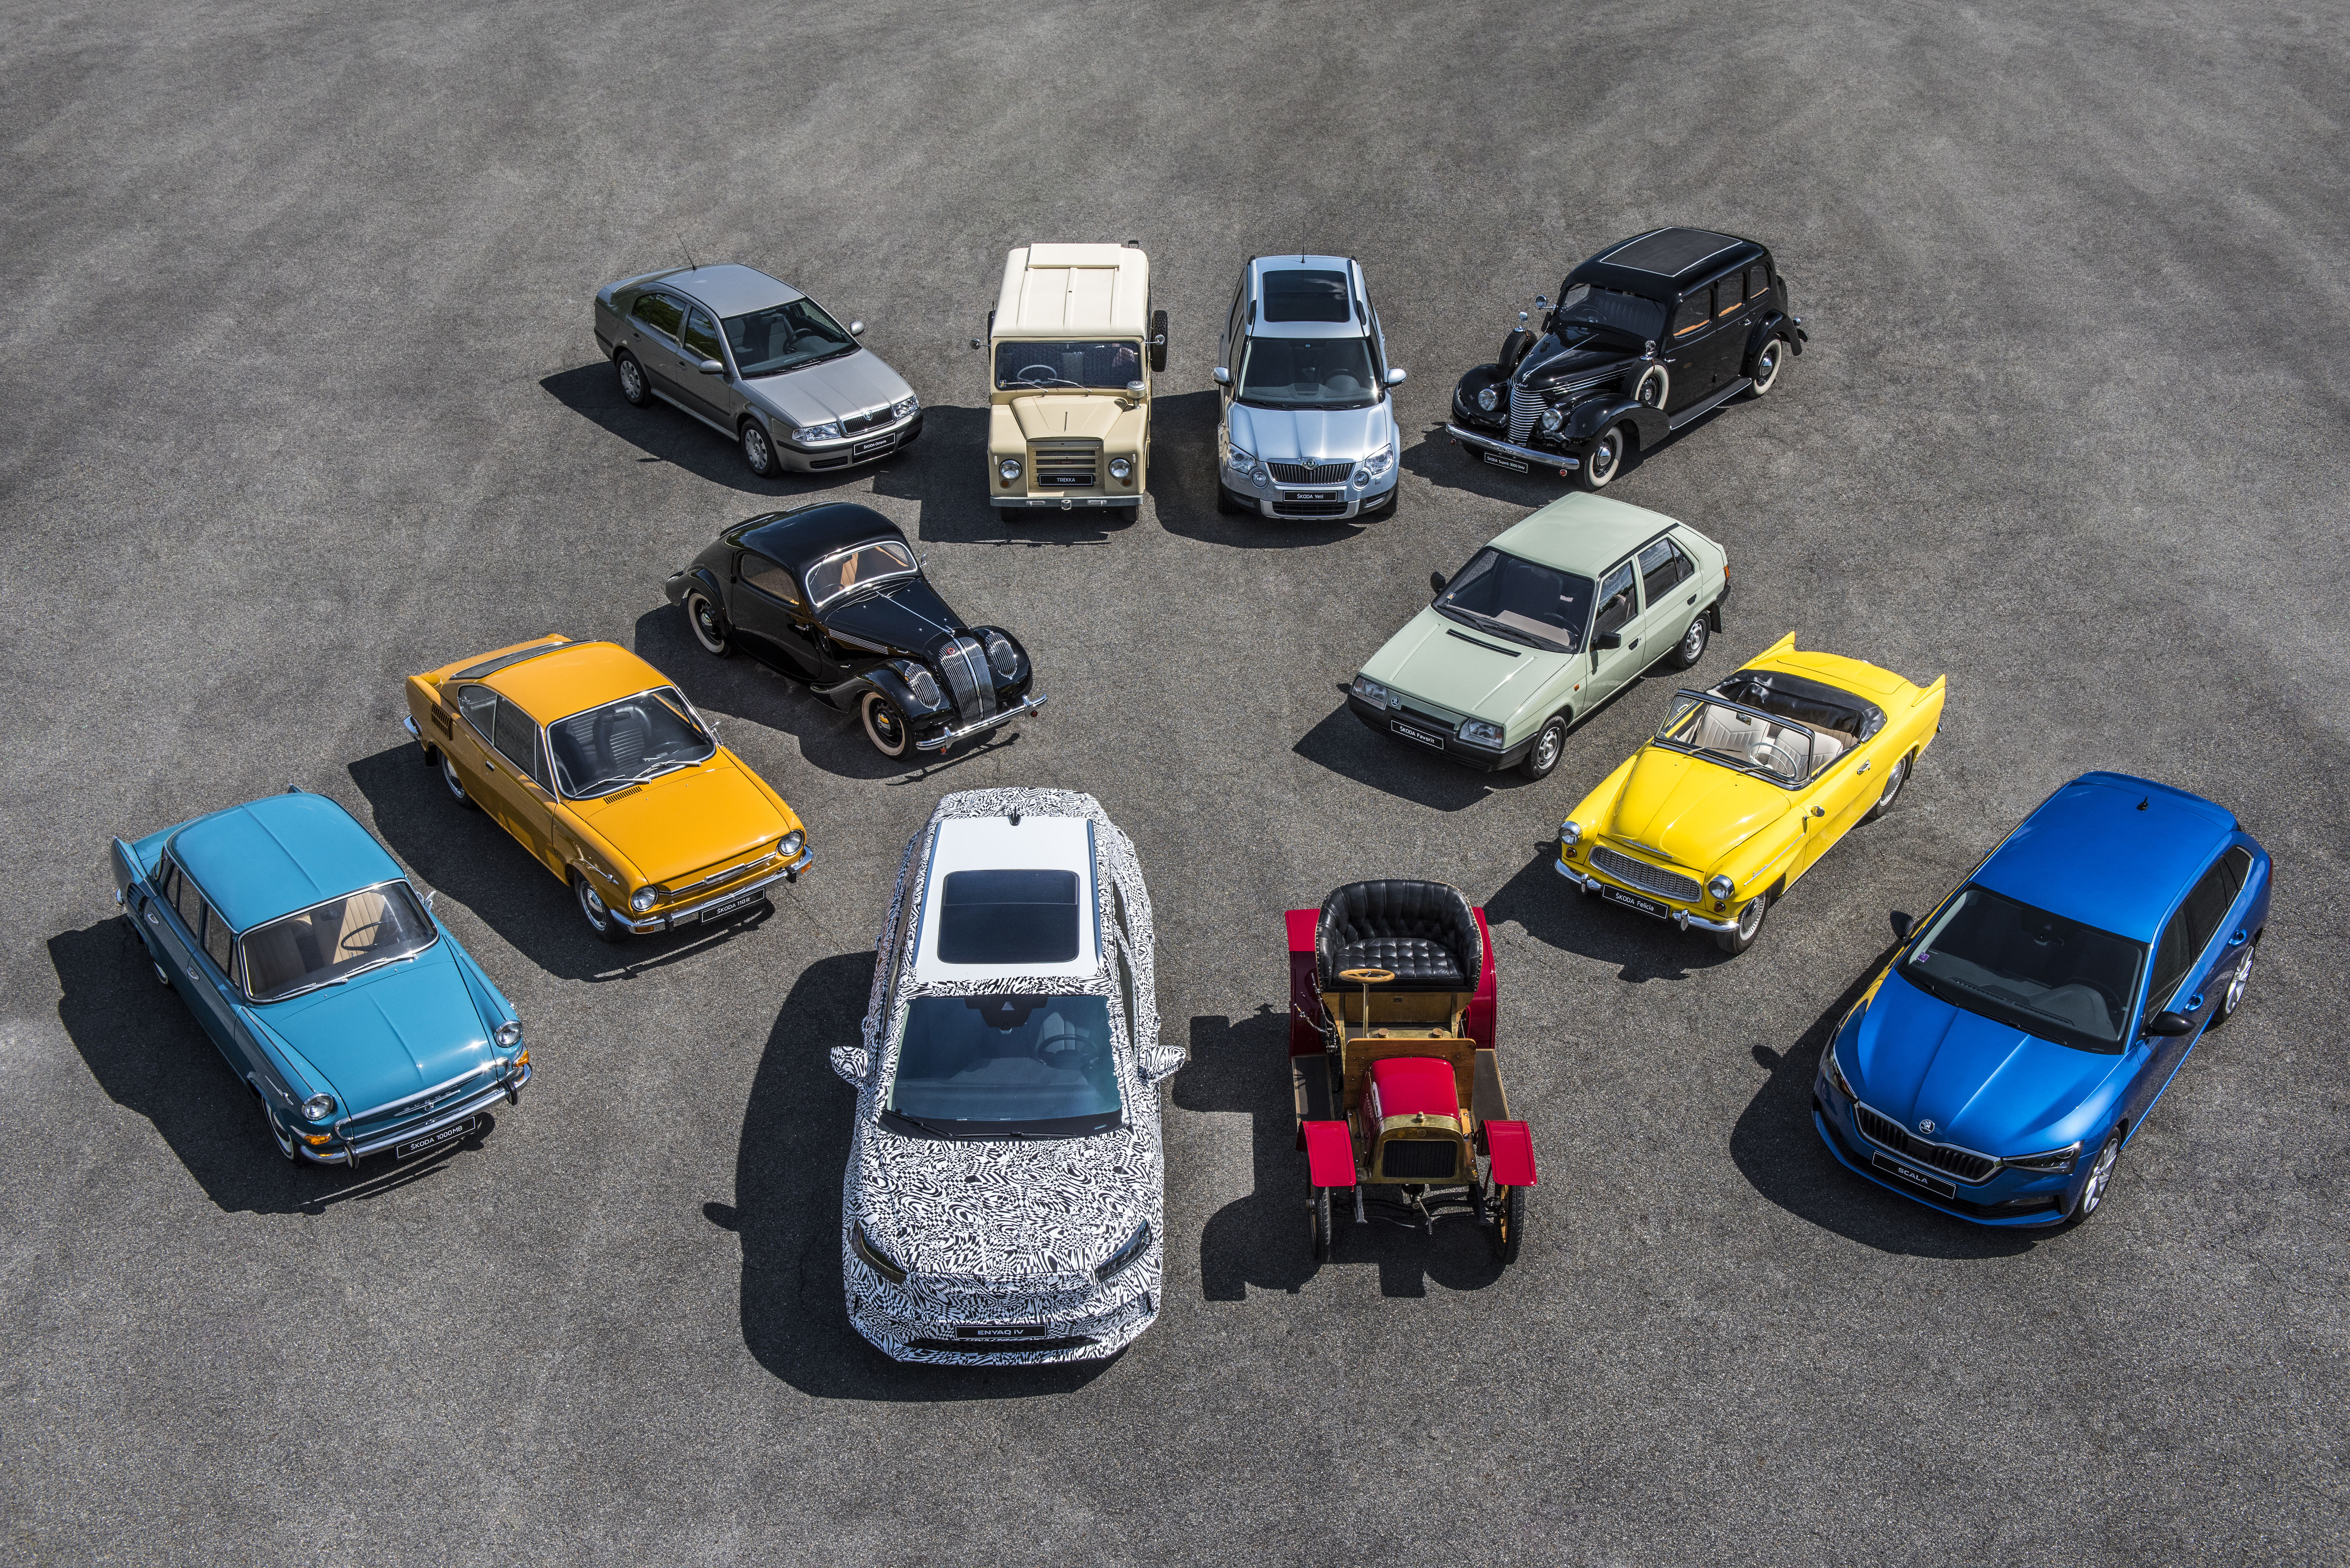 125 years of SKODA: A journey through time with twelve automotive milestones from the company's history - Image 8